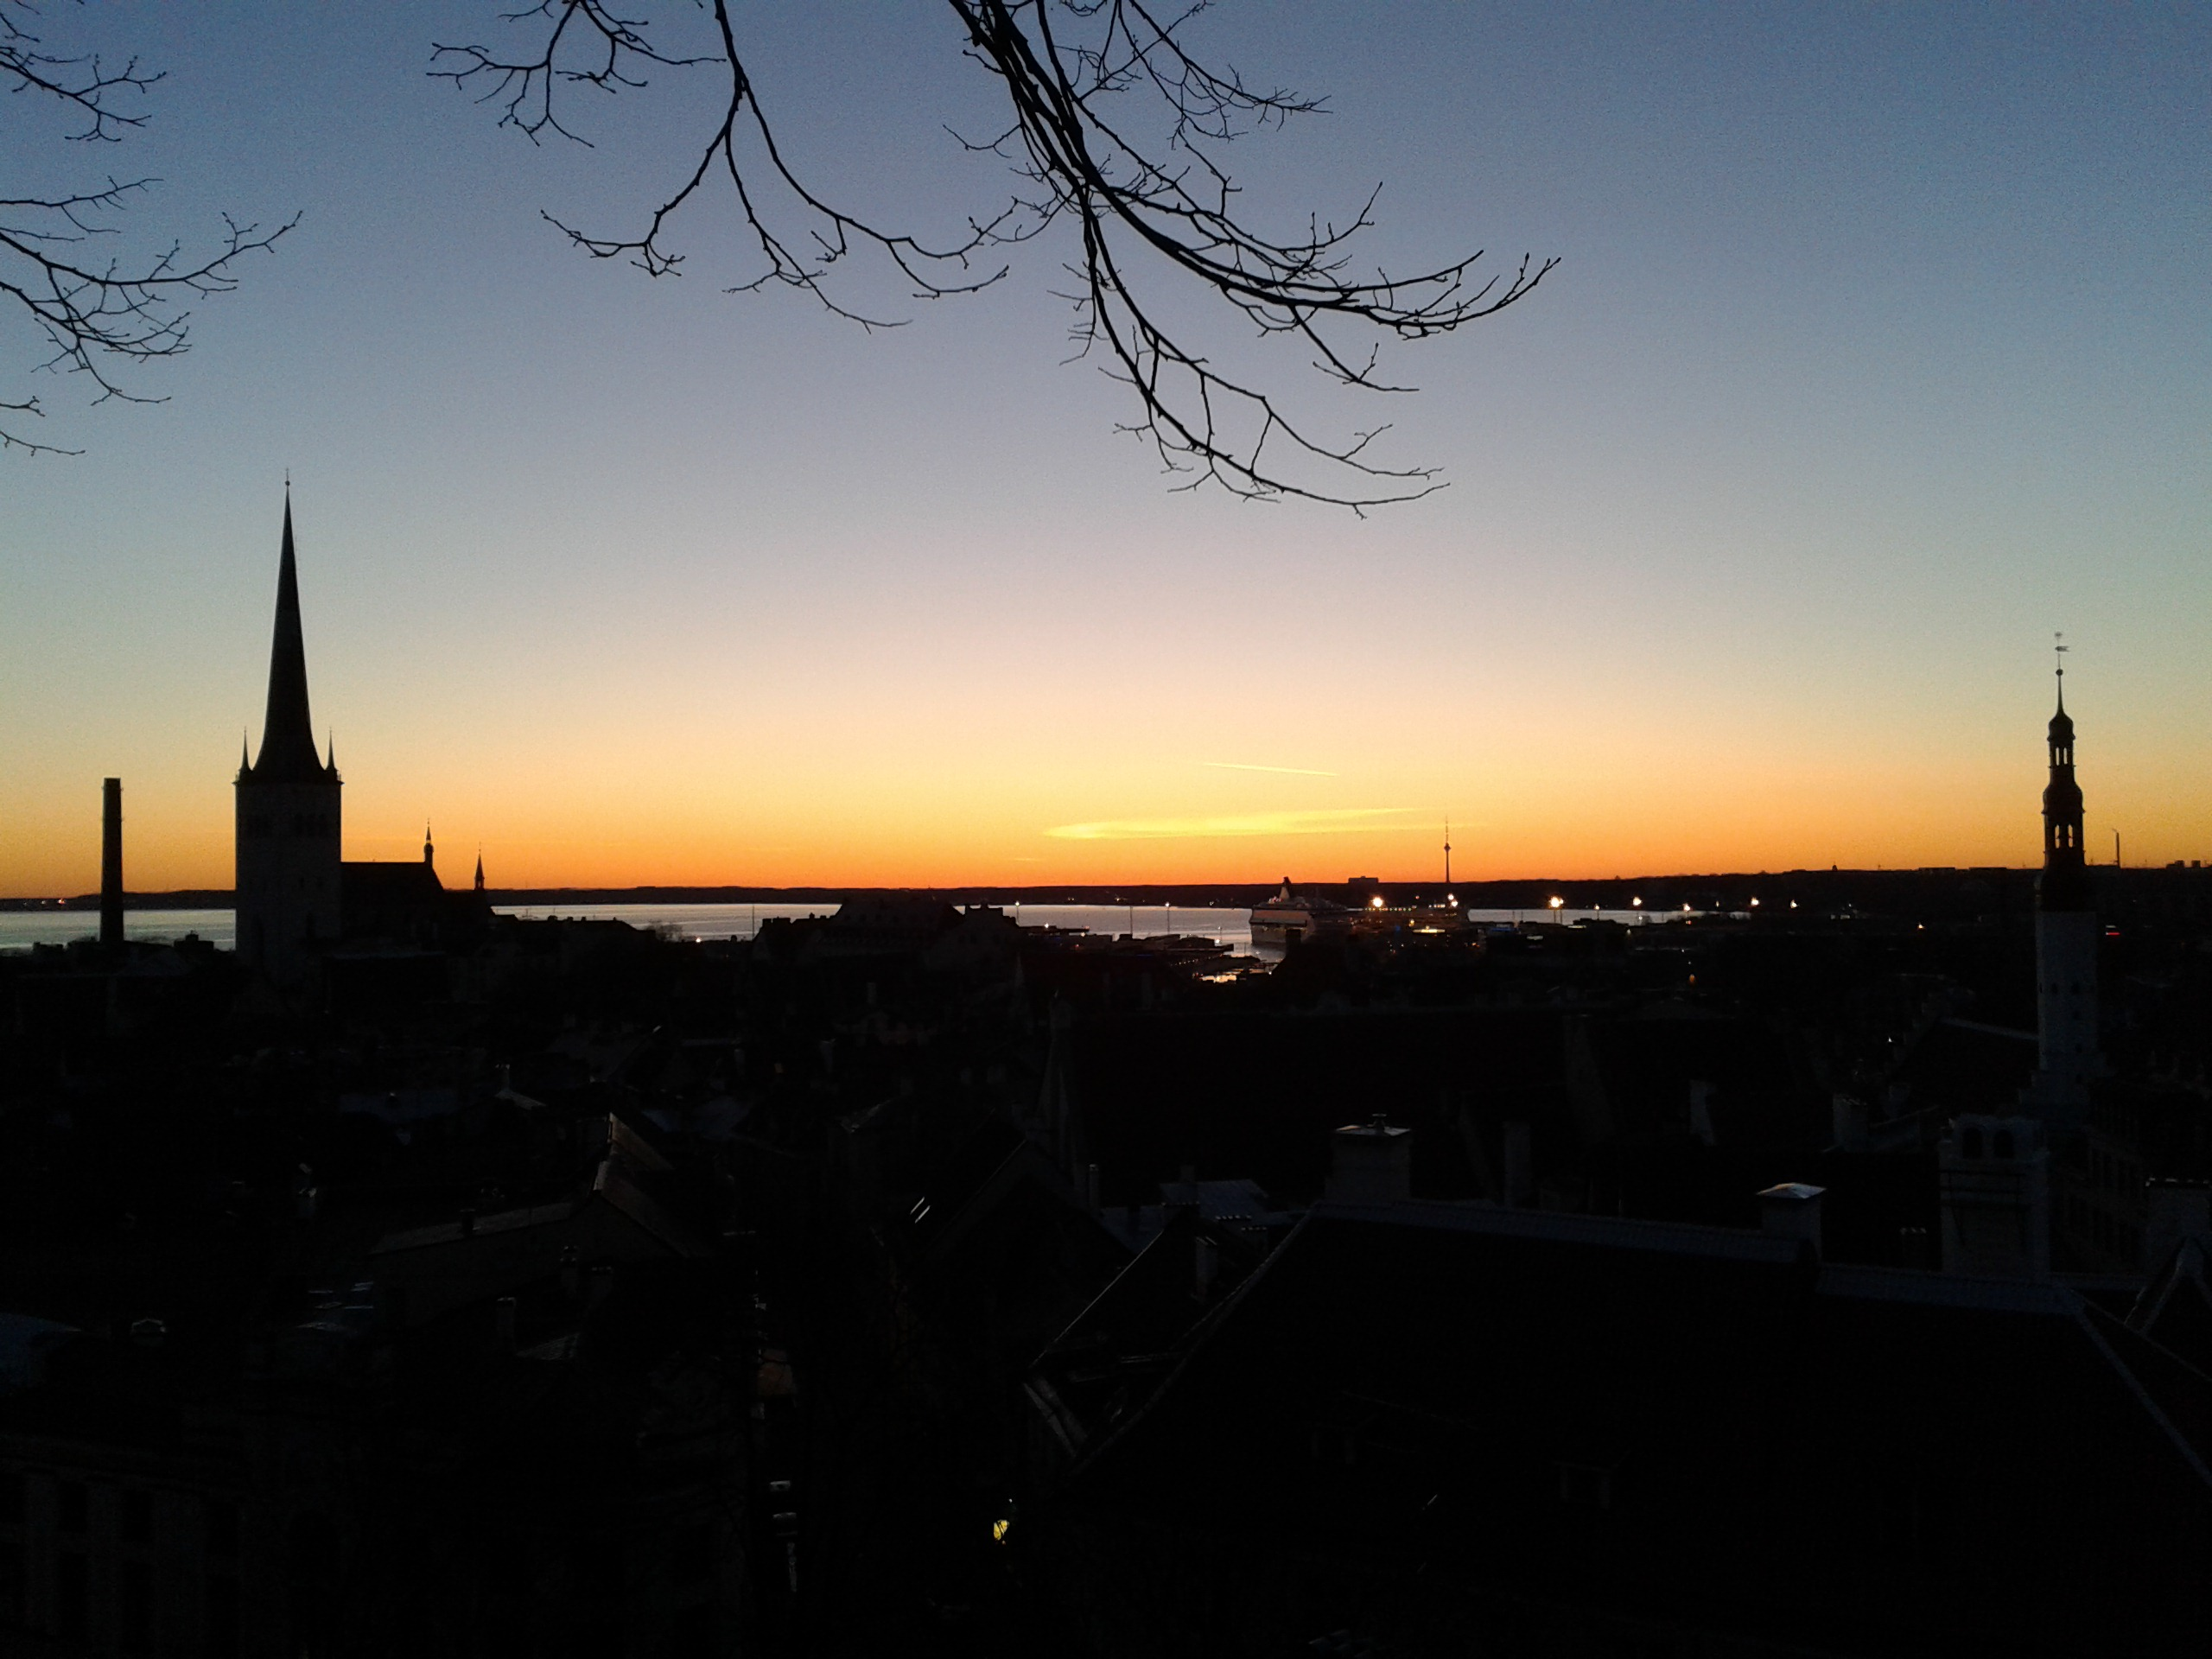 From early dawn till late night in the capital of Estonia. Why it is worth freezing in Tallinn.